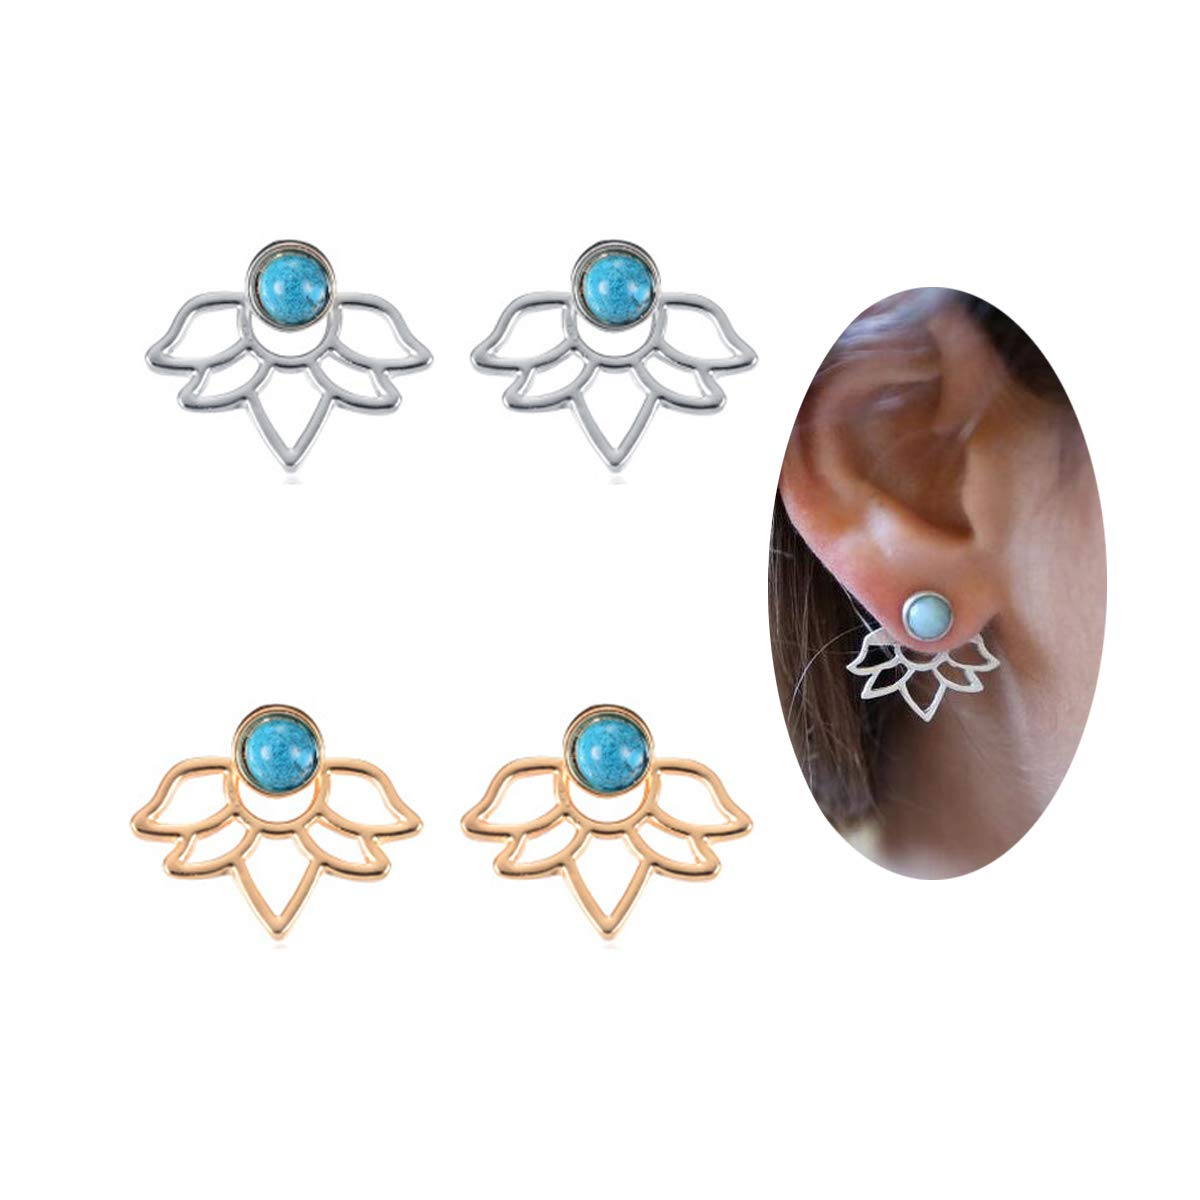 New Arrival 2 Pairs Hypo Allergenic Turquoise Lotus Jacket Earrings for Women Fashion Earrings Set FarryDream